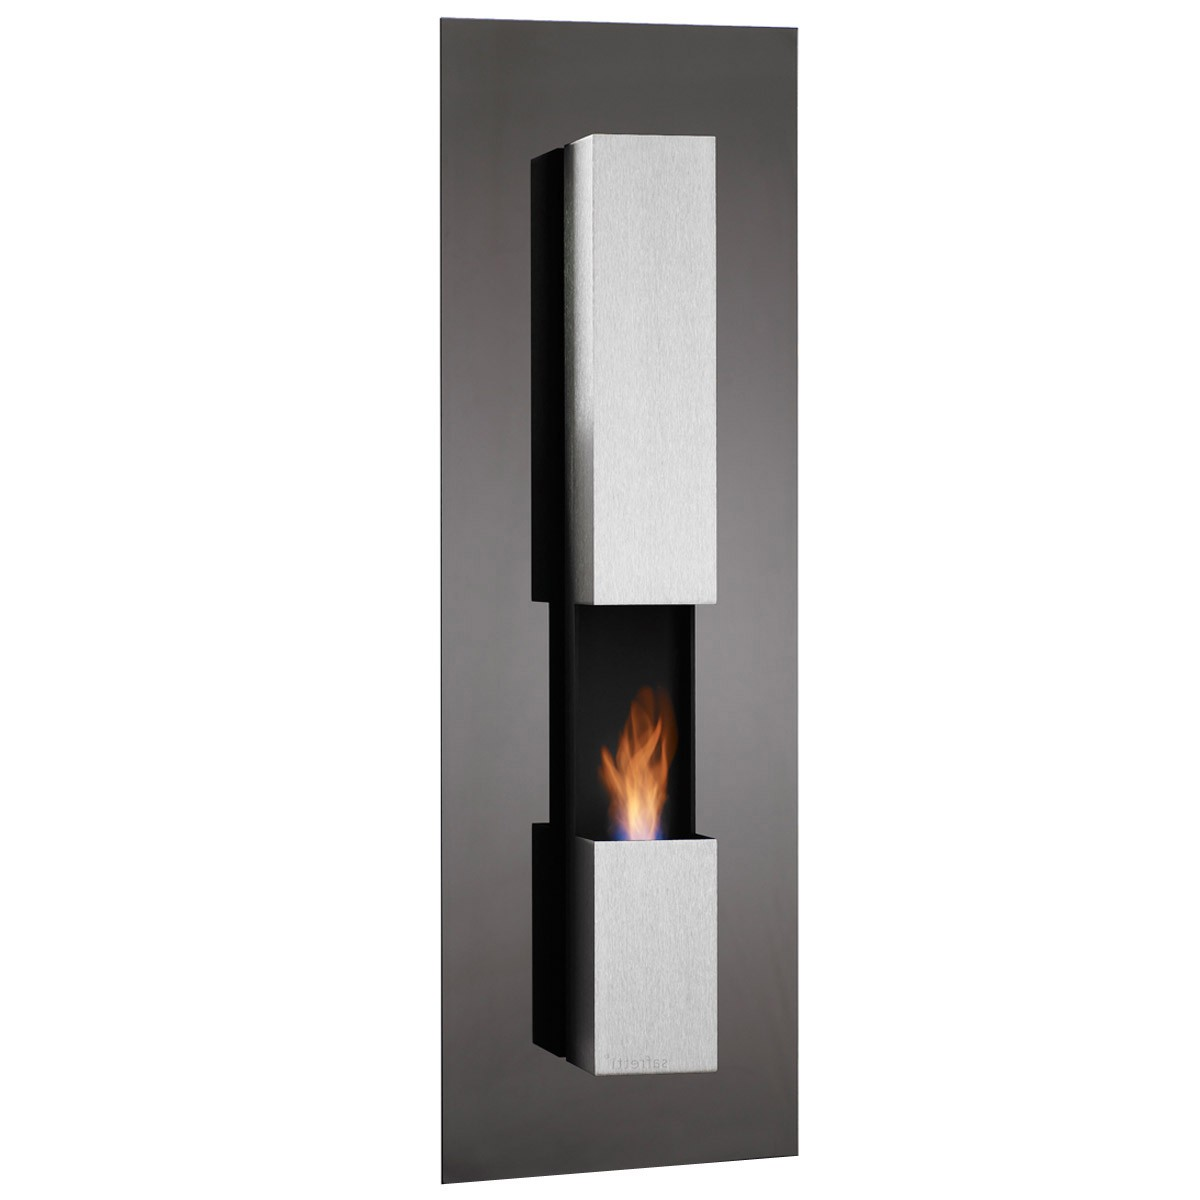 safretti ethanolkamin riviera le gl feuer grill. Black Bedroom Furniture Sets. Home Design Ideas